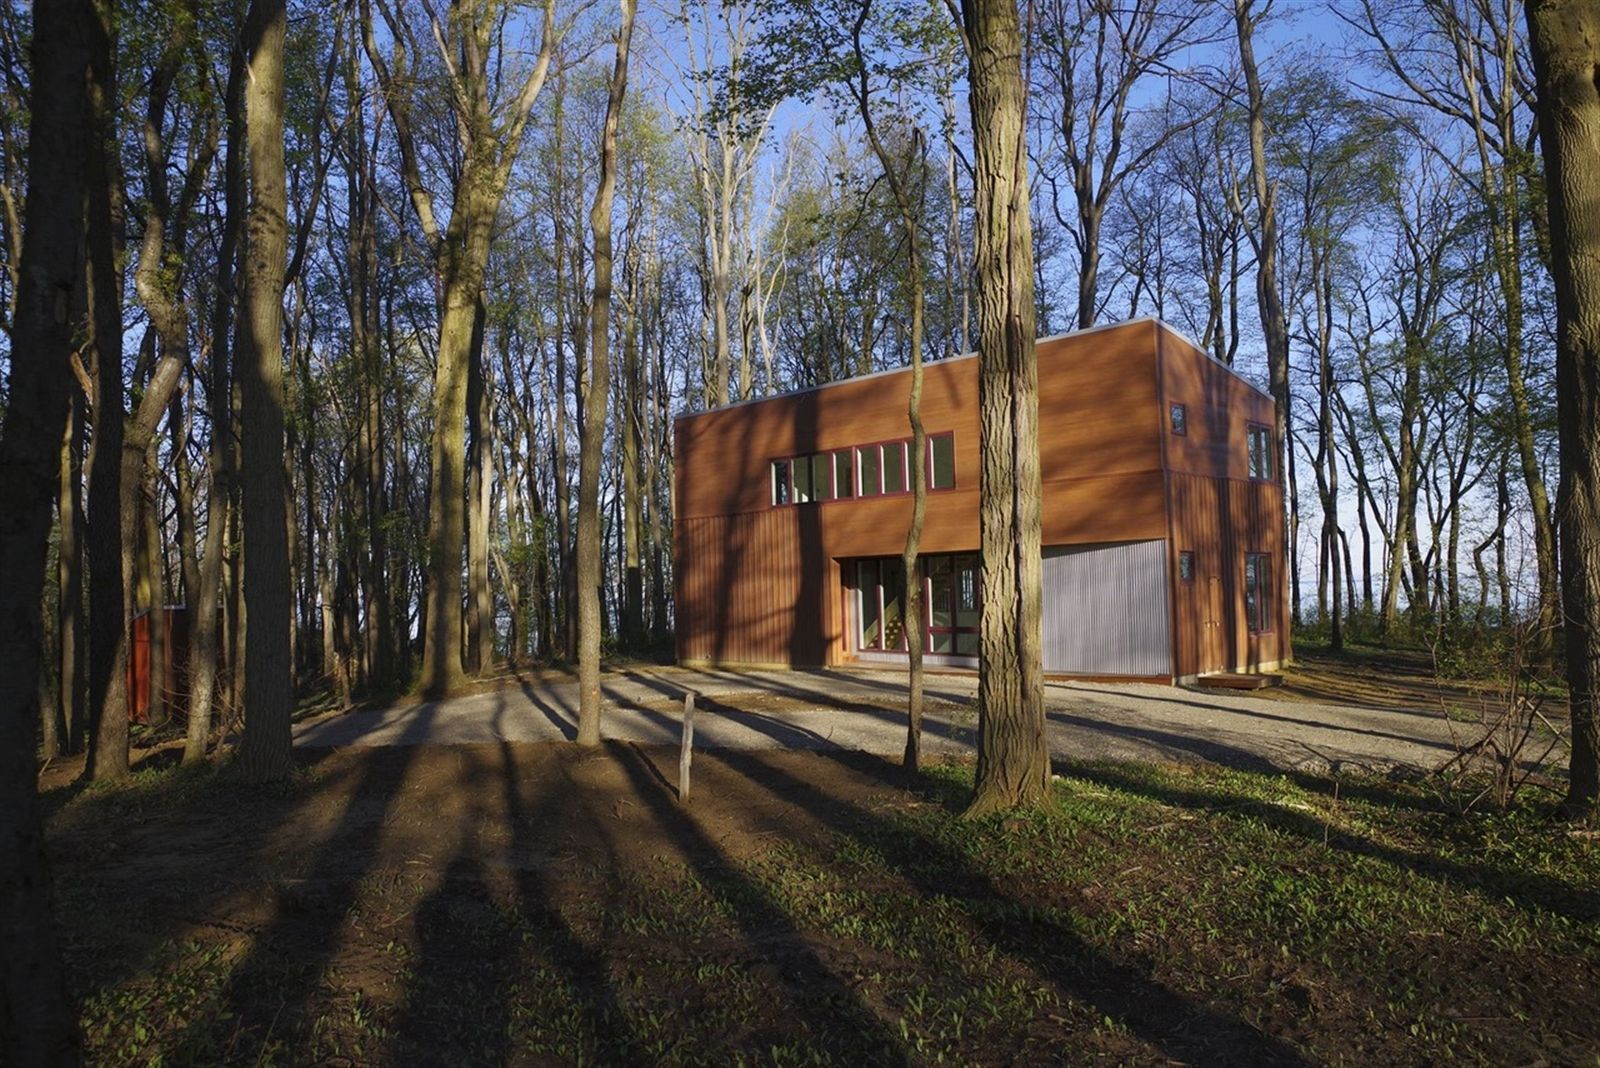 This is Turtle Rocks, the weekend house Wayne Geist built in Portland, N.Y., on a 4-acre lot on the shore of Lake Erie. Geist worked with architect Peter DiPietro of Westfield on the project.